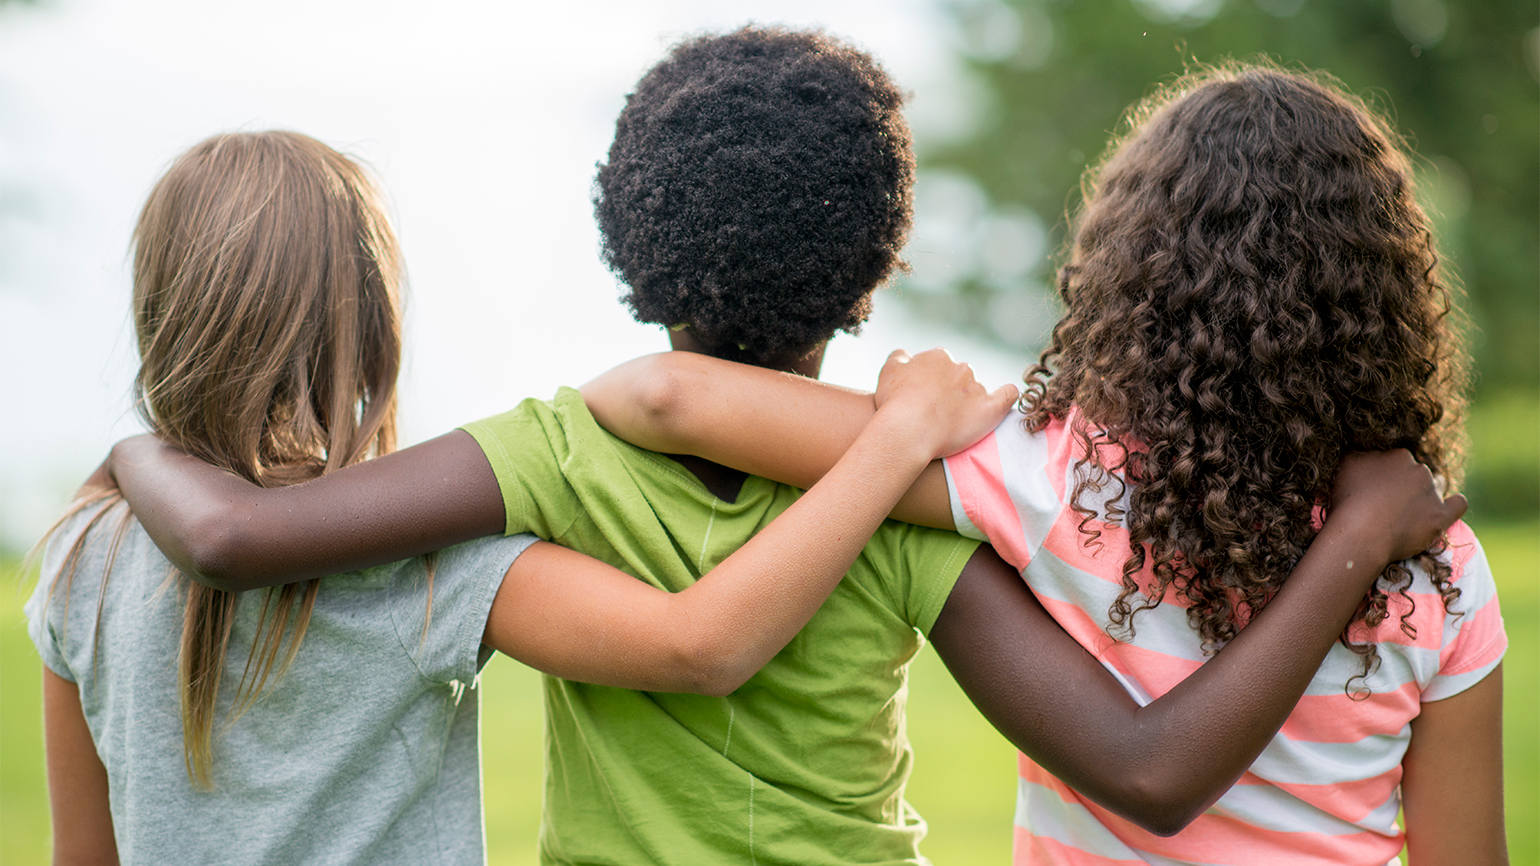 Children with their arms over one another's shoulders